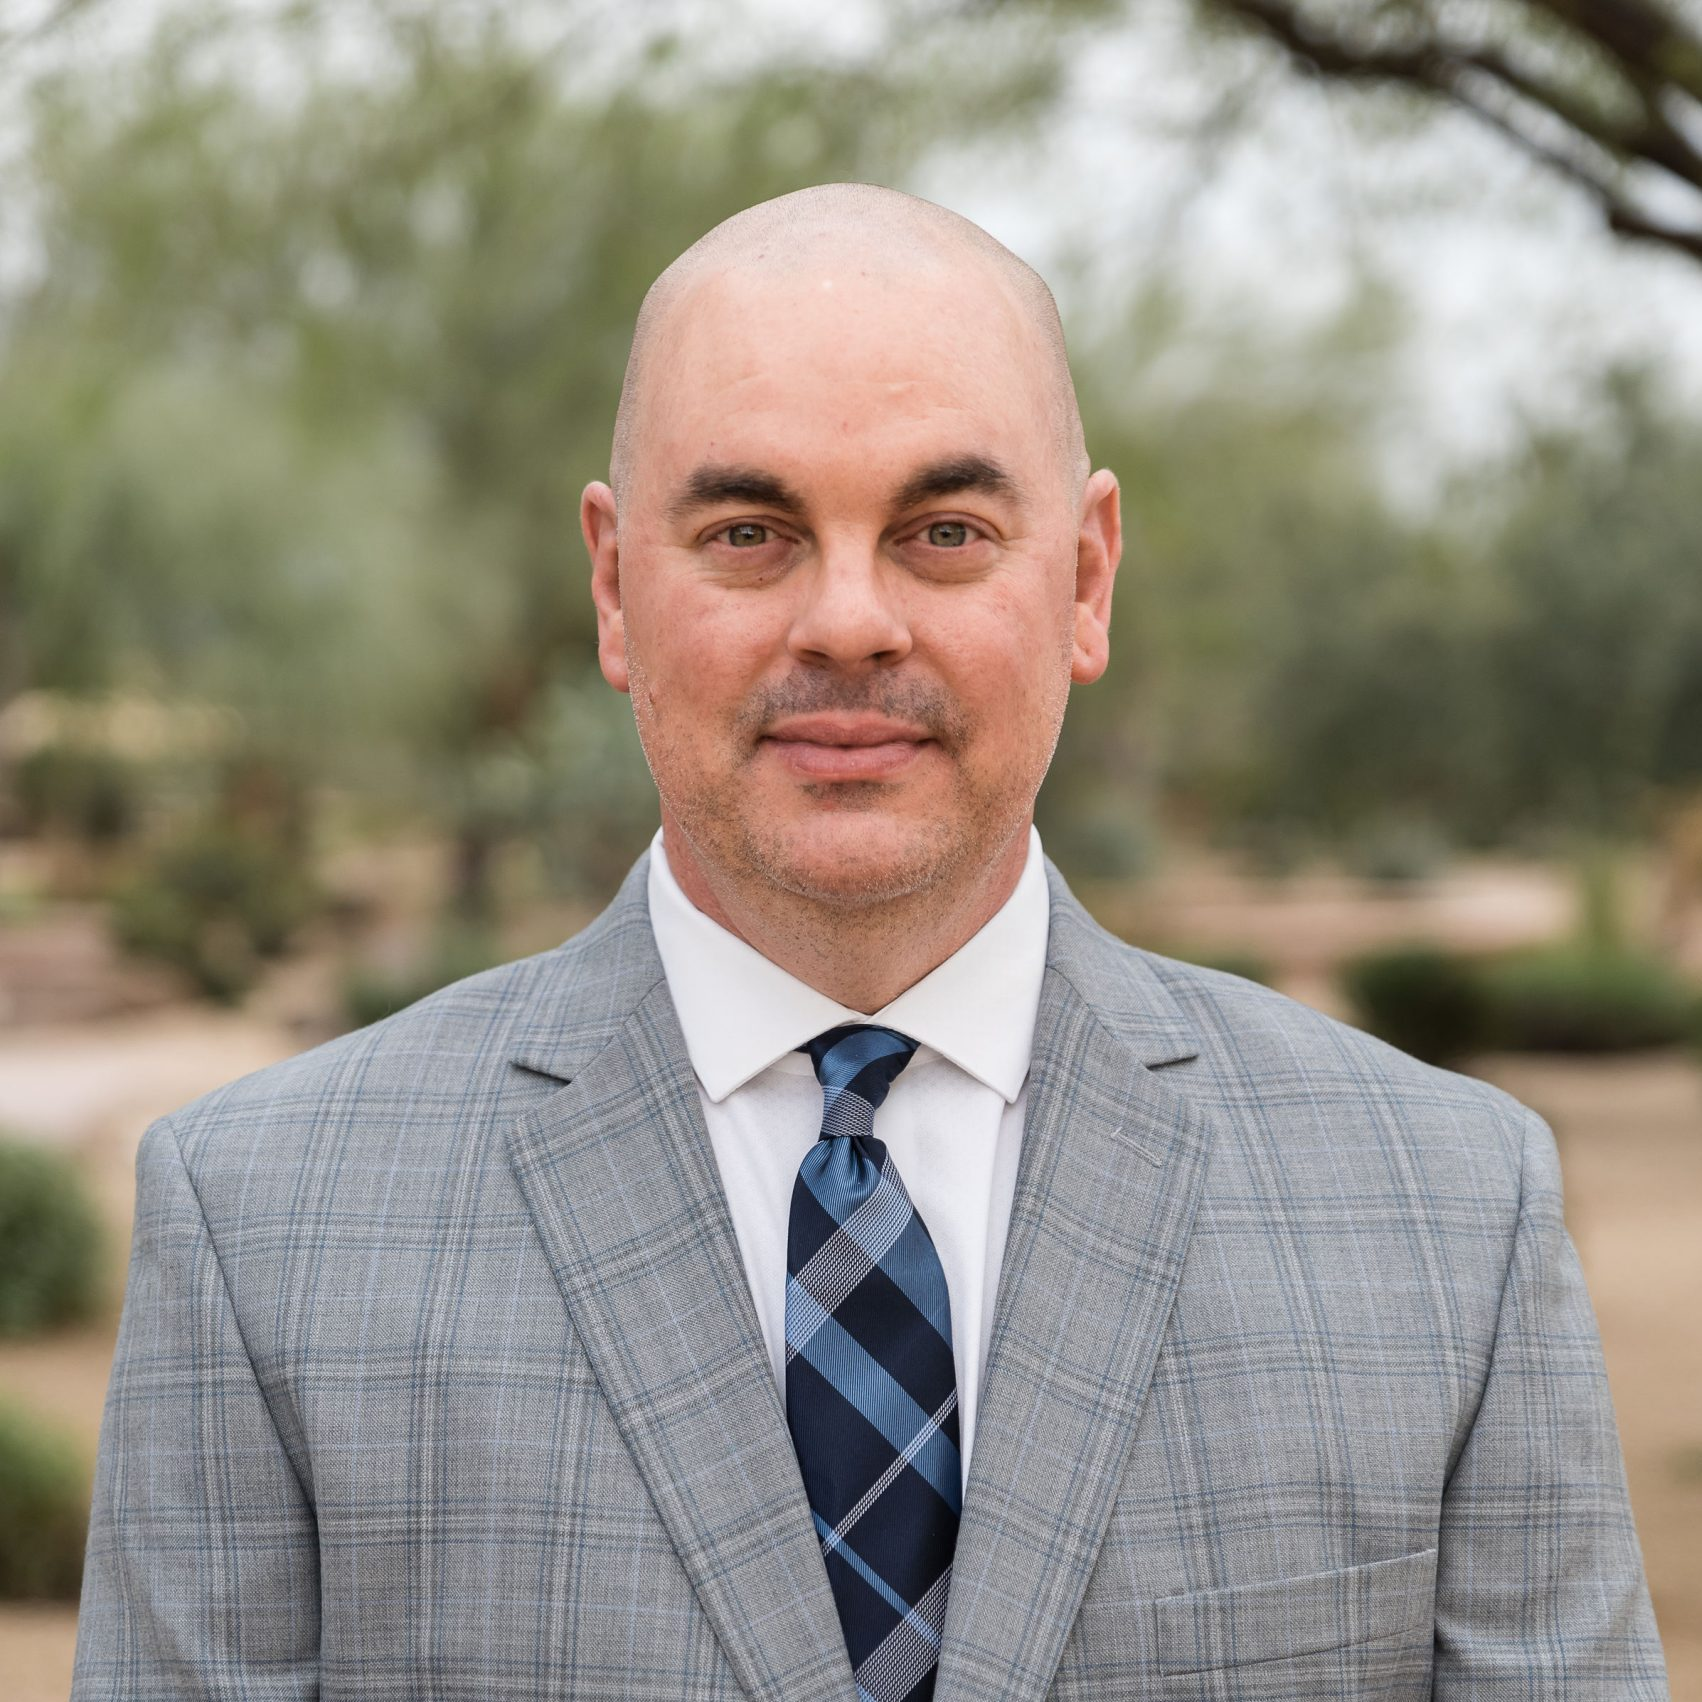 Aaron Connor Will Be a Full-Time Public Servant as the Head of the Maricopa County Assessor's Office